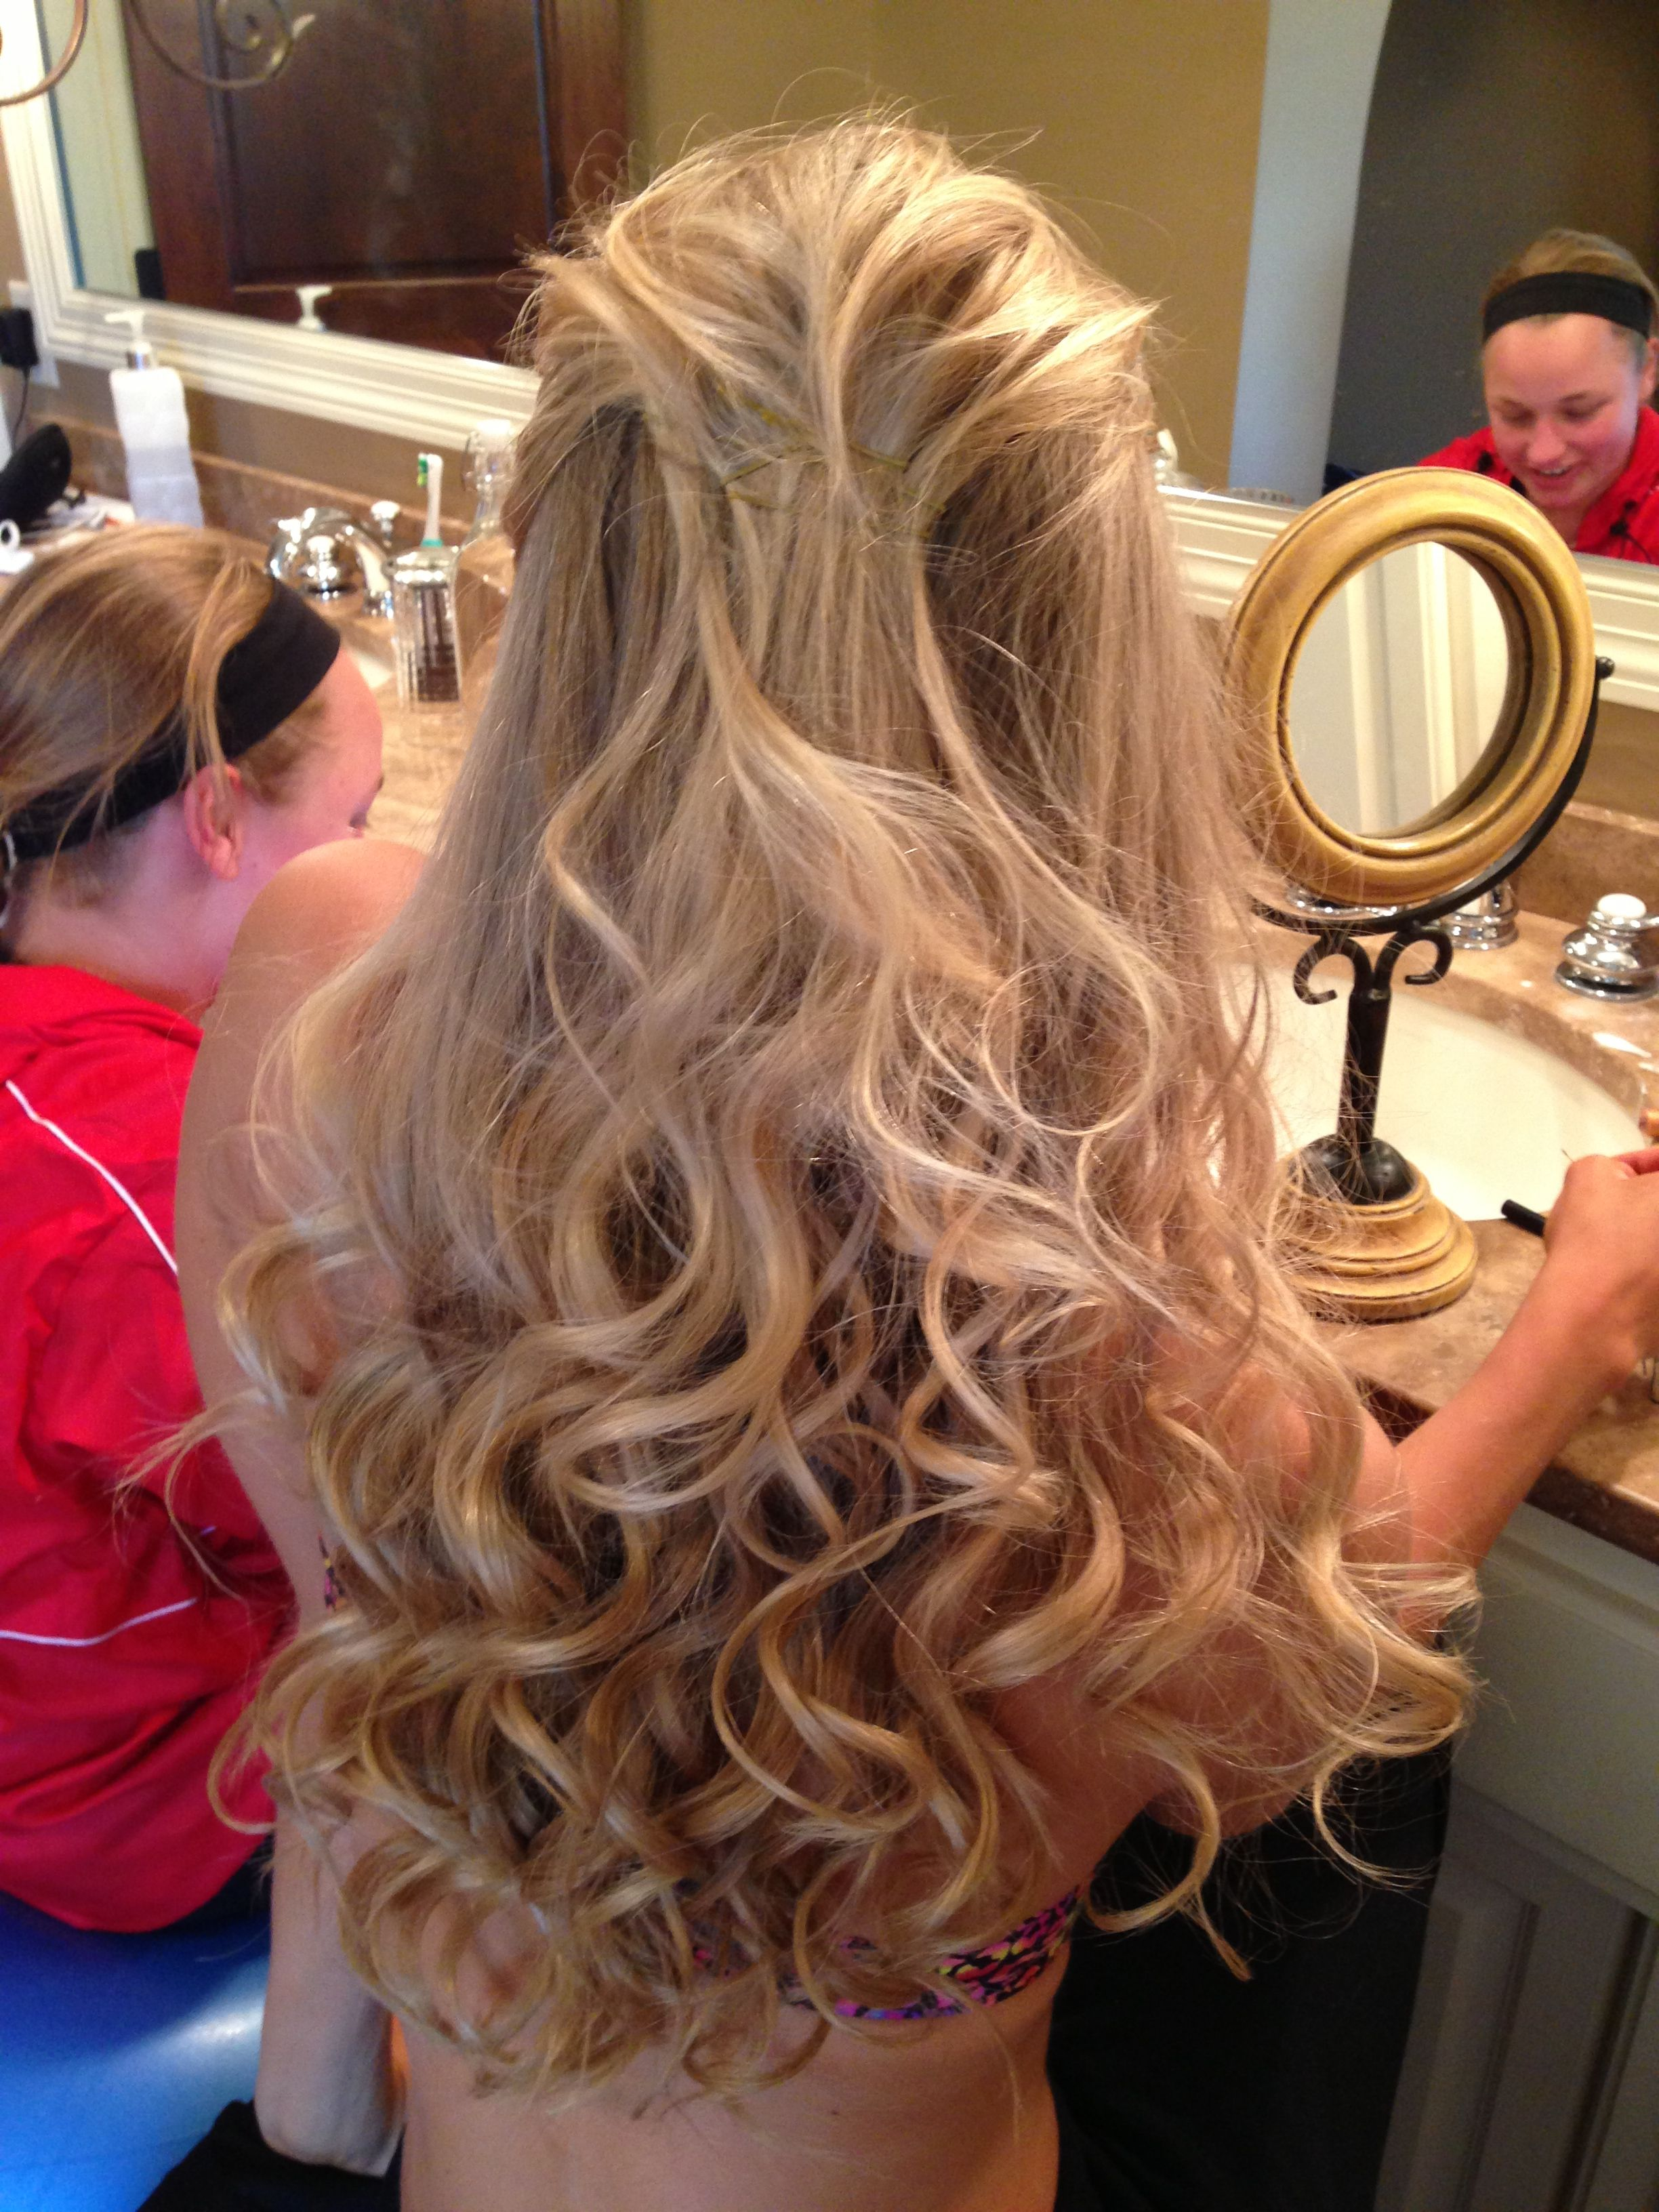 Prom hairstyle homecoming hairstyle hairstyle hair hair